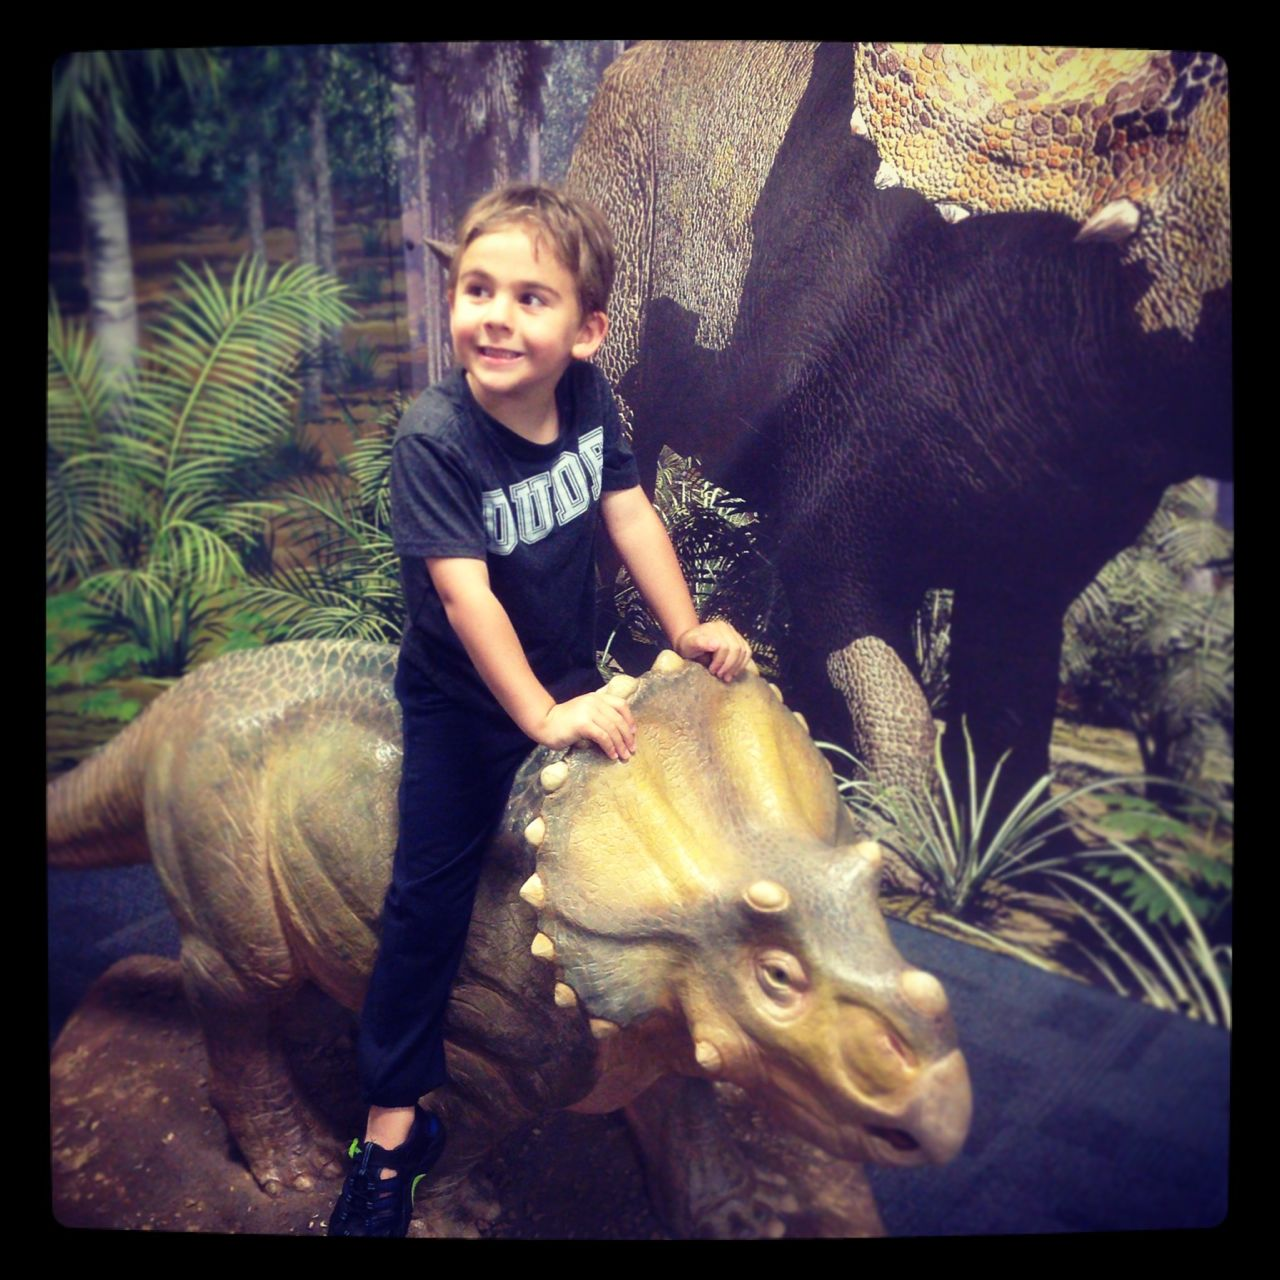 Child-sized dinosaurs to clamber on...